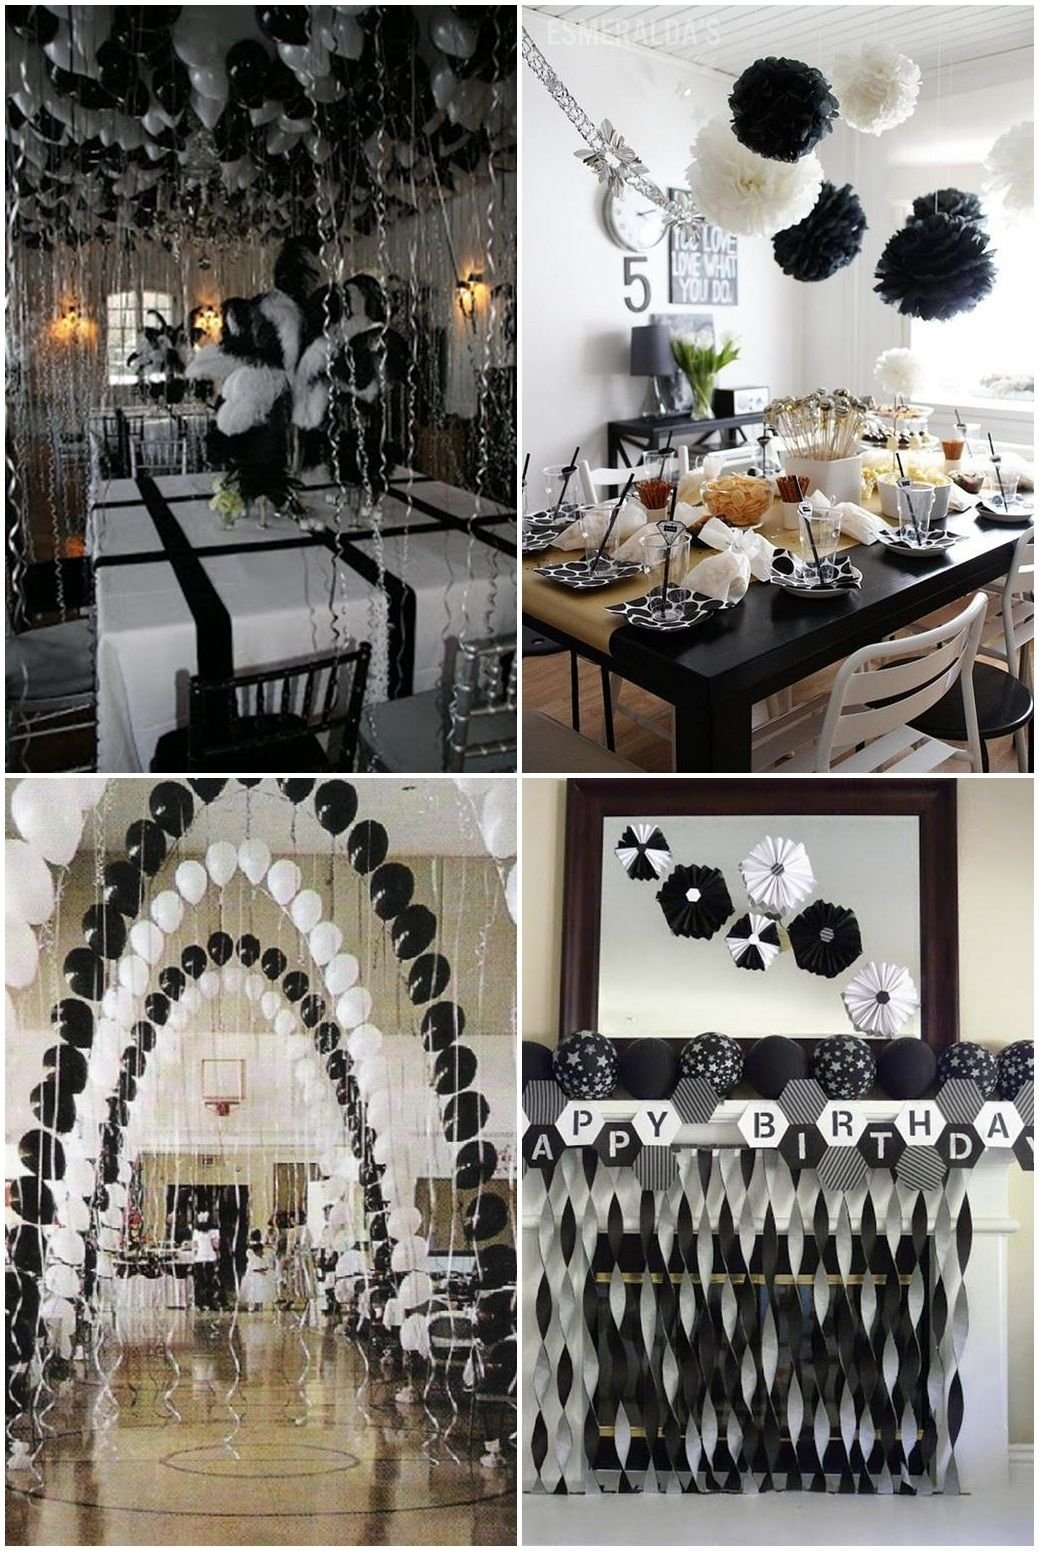 10 Unique Black And White Party Decorations Ideas black and white graduation party ideas father daughter dance decor 6